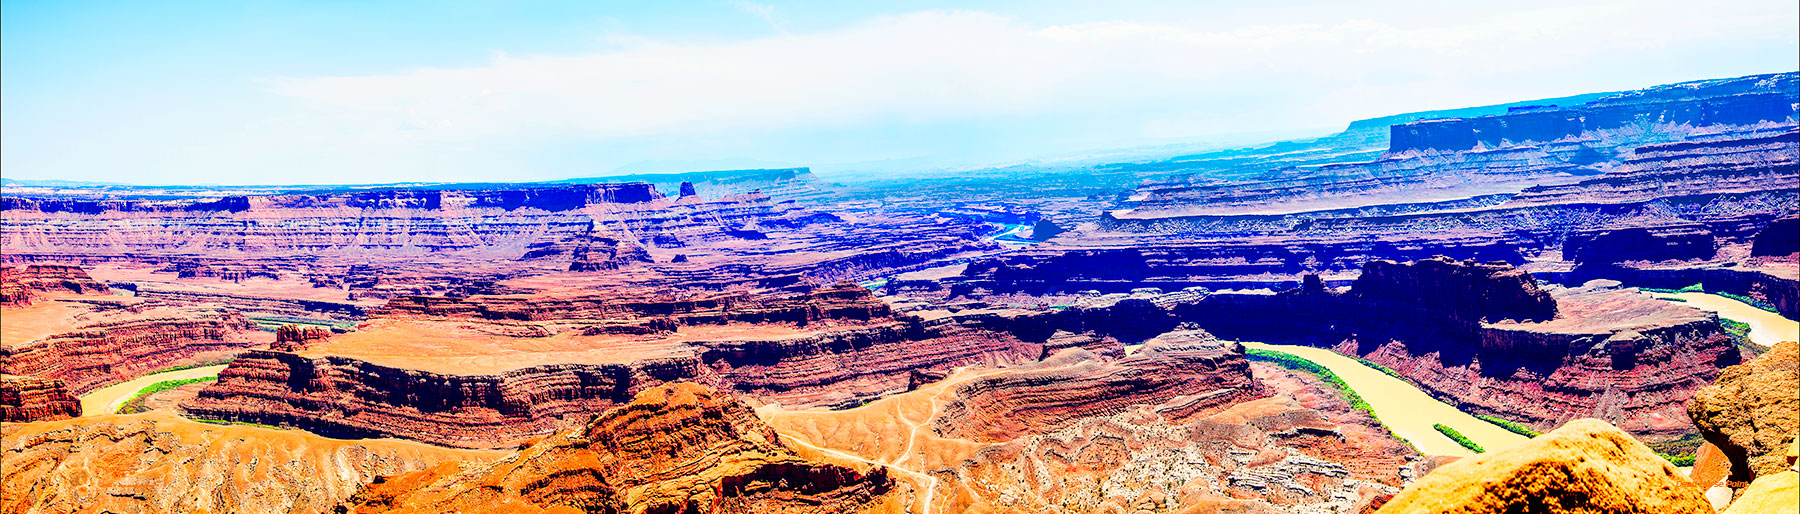 Dead Horse Point 70 x 20